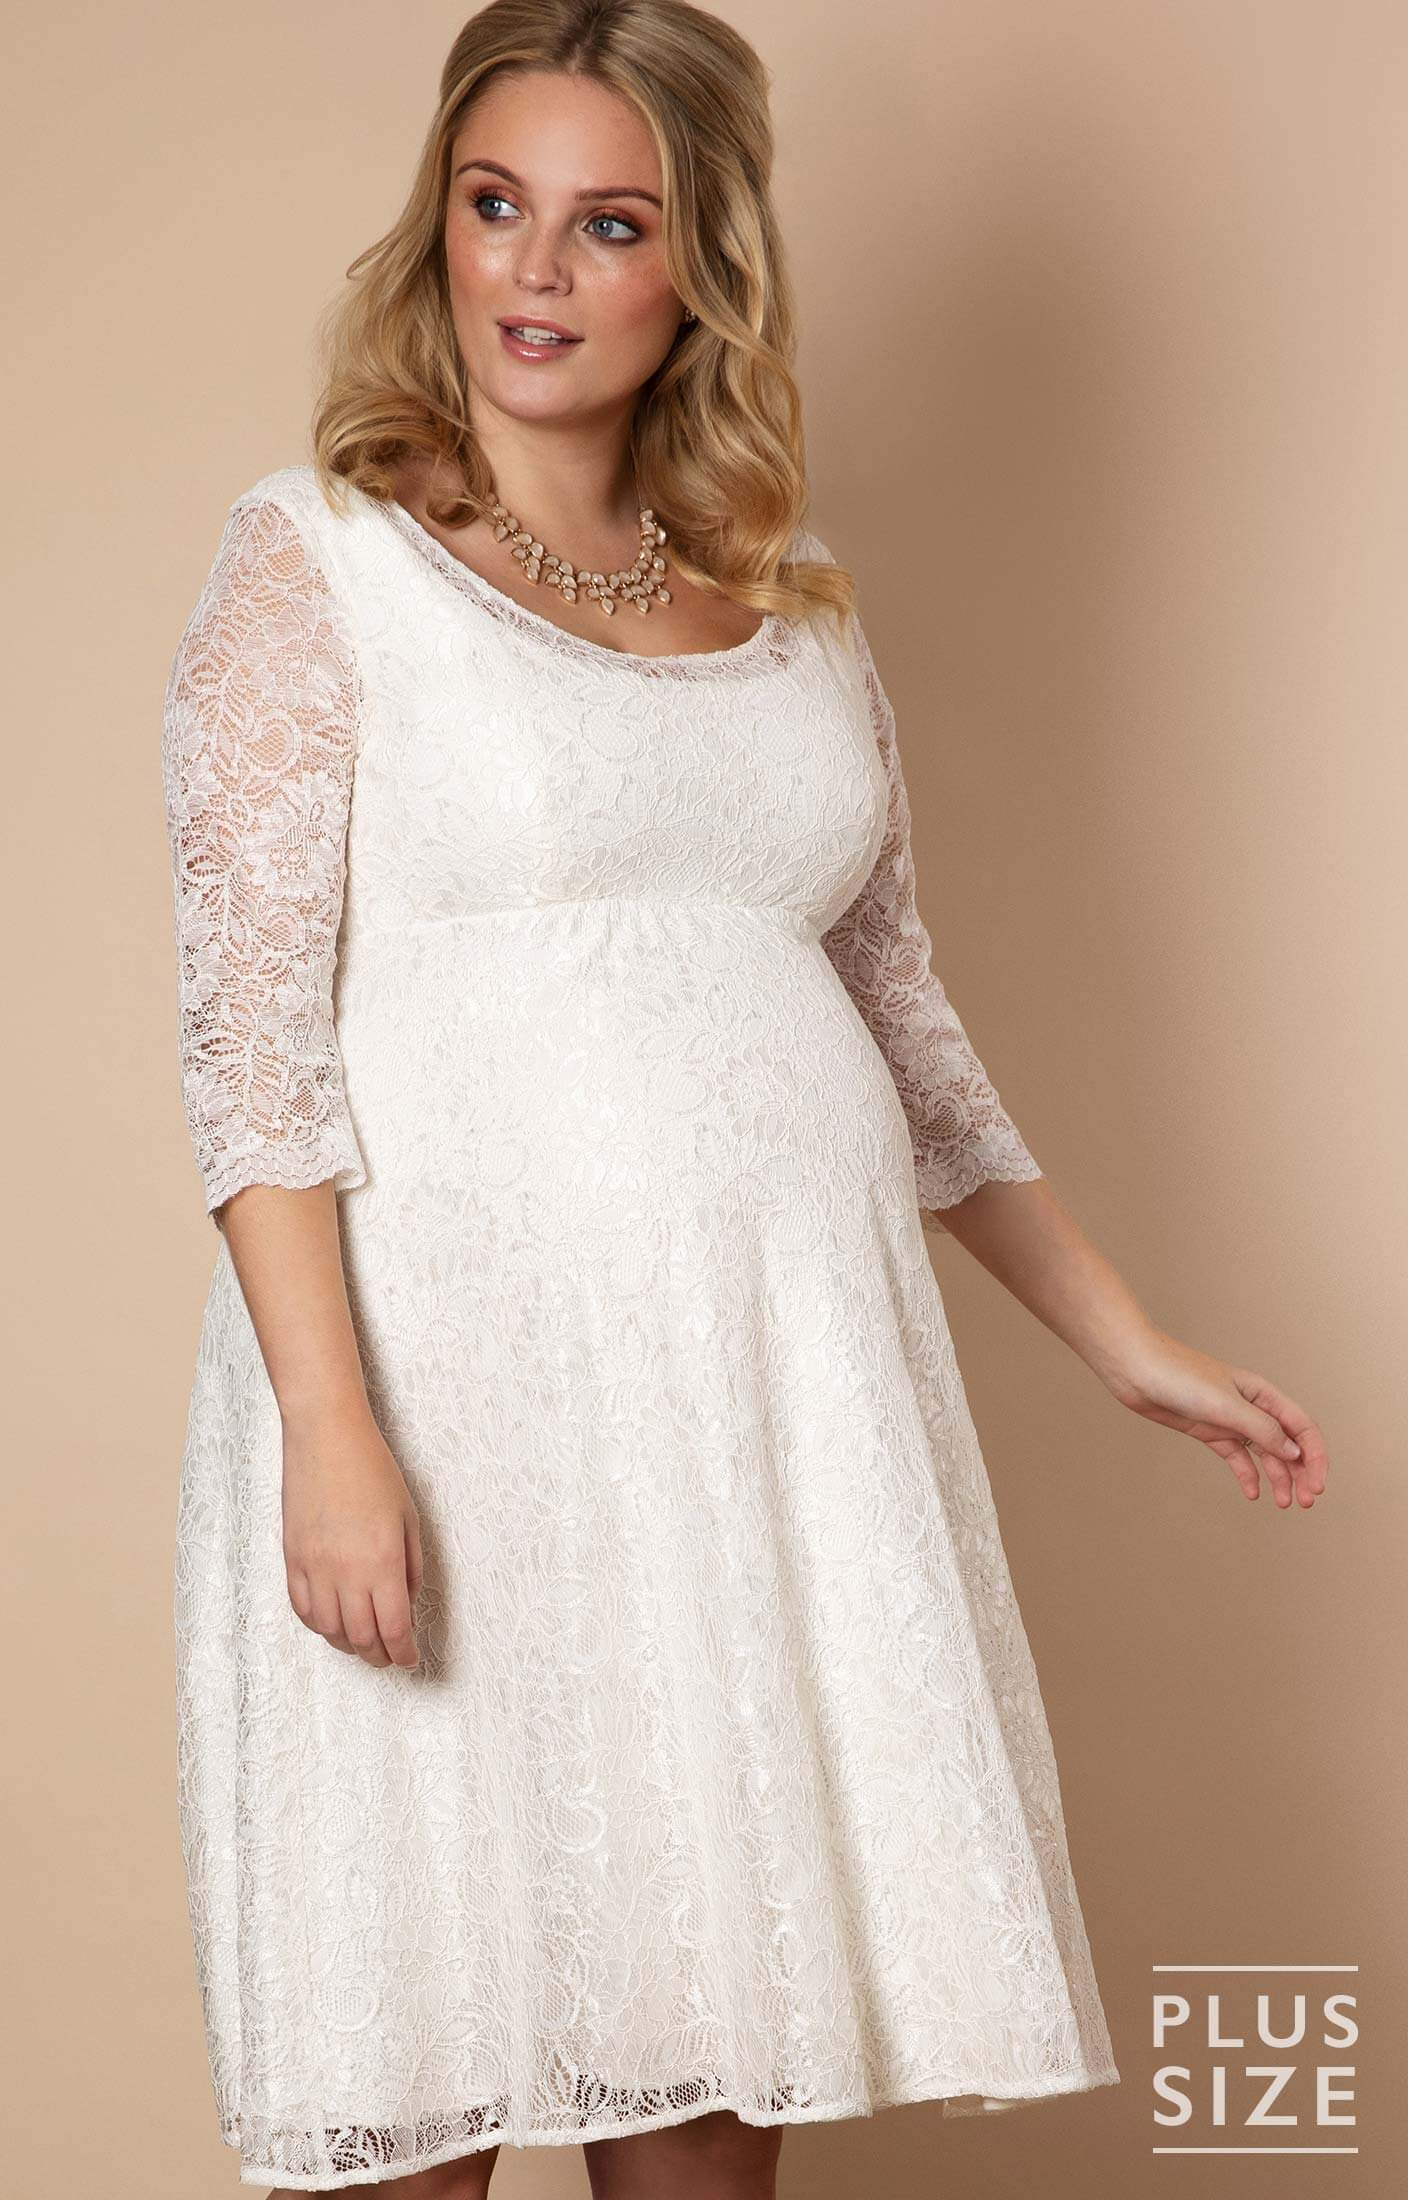 Freya Dress Short Plus Size Maternity Wedding Dress Ivory Maternity Wedding Dresses Evening Wear And Party Clothes By Tiffany Rose Ie,Womens Wedding Guest Dresses Near Me